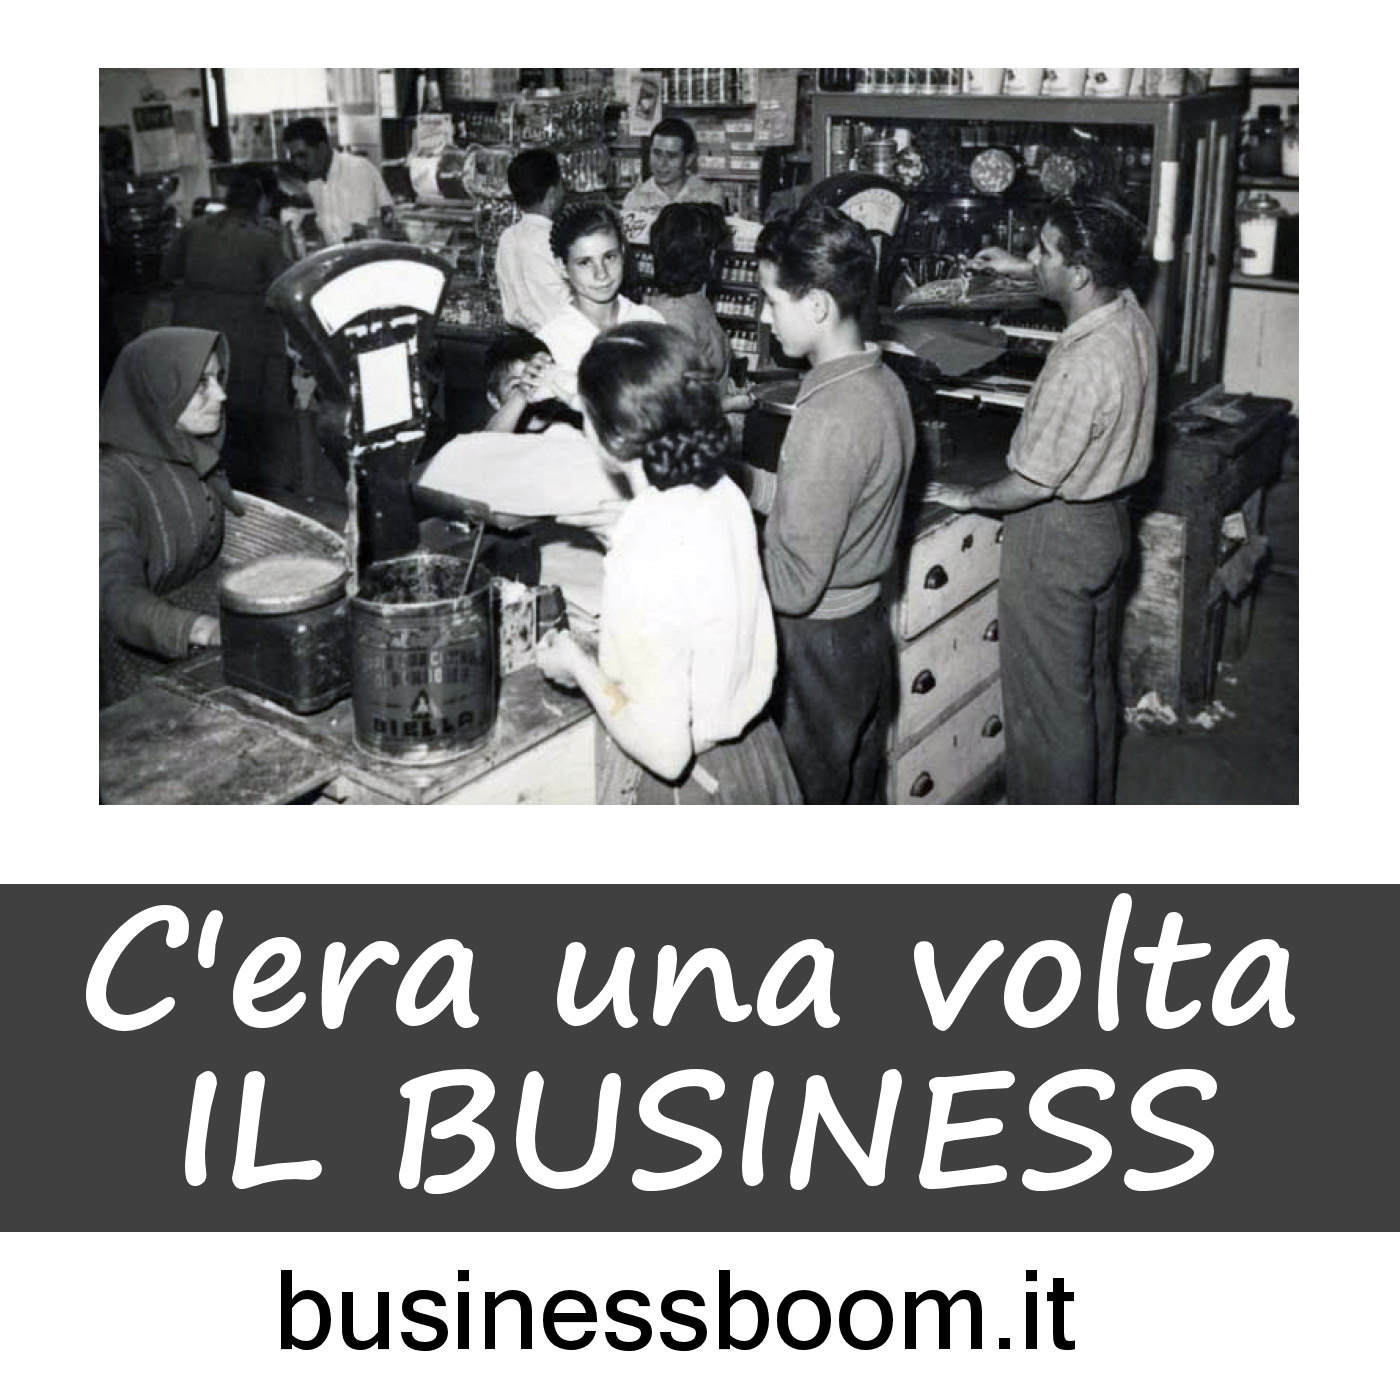 C'era una volta il business